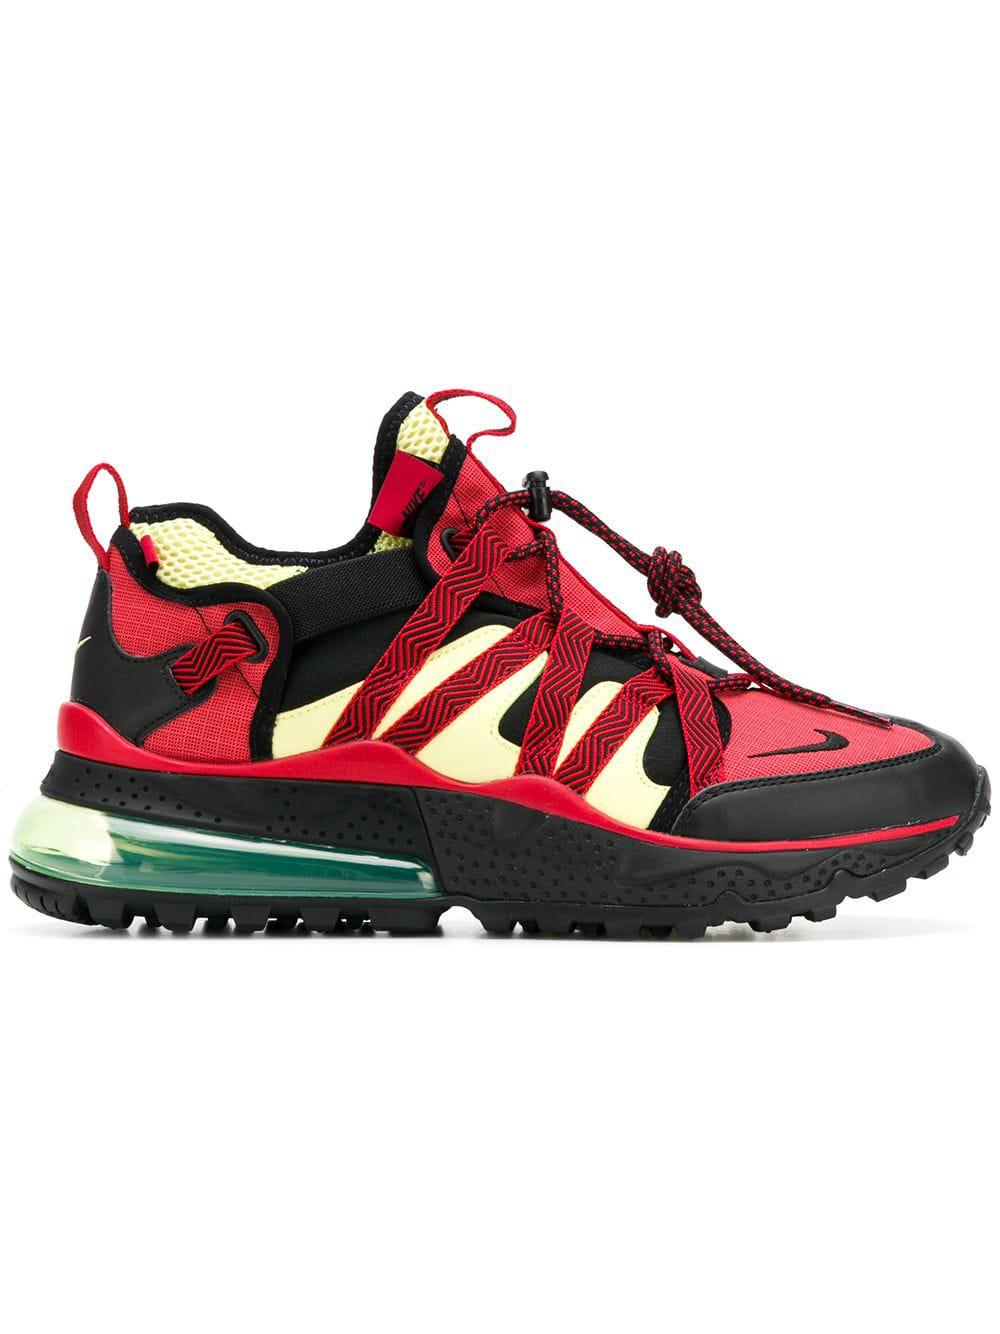 baskets basses air max 270 bowfin femme